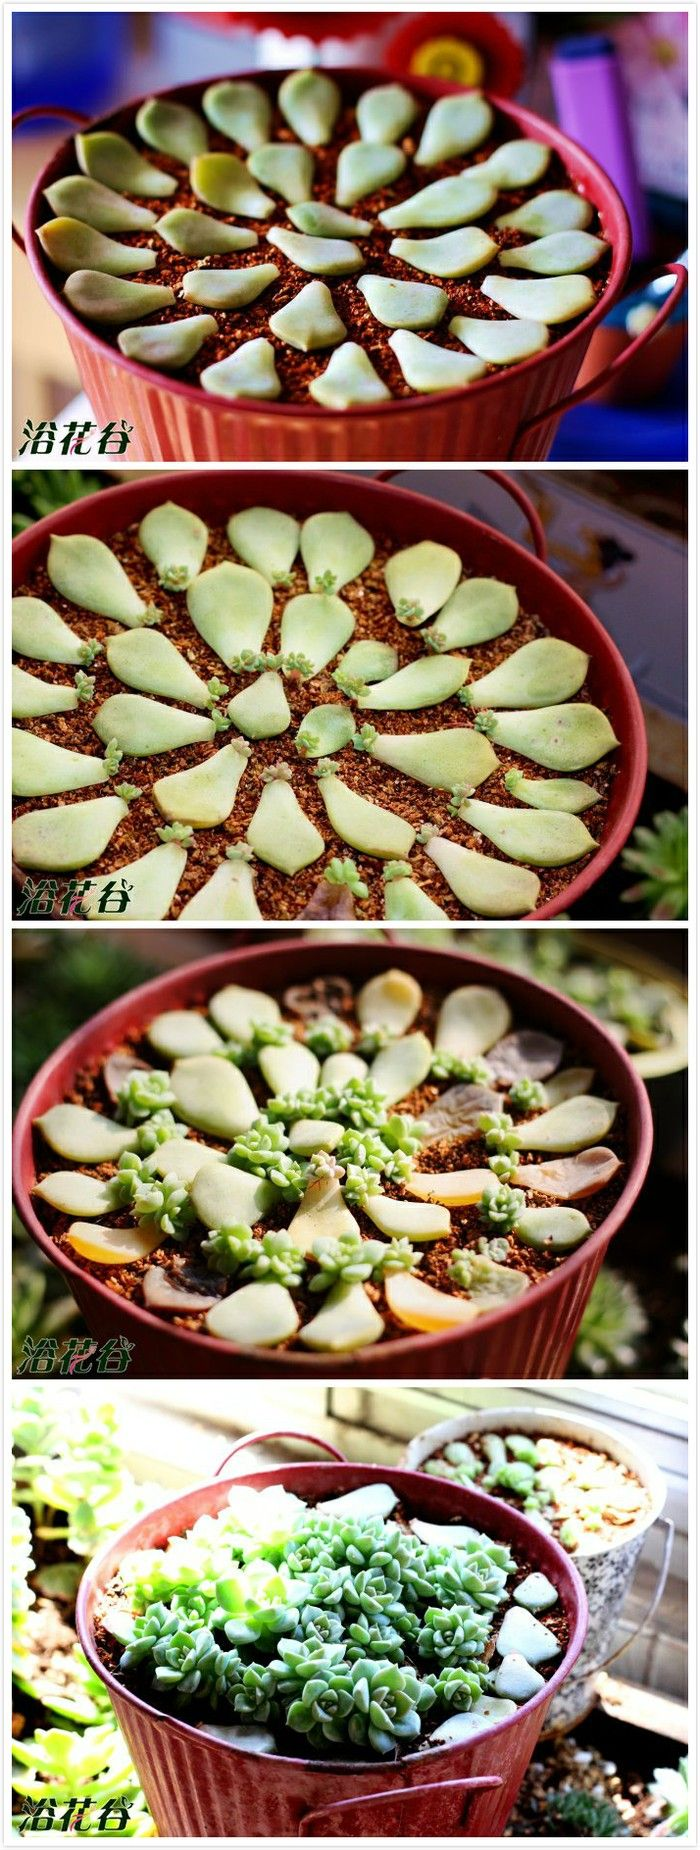 all about what and how to grow: Succulents Garden, Propagating Succulent, Growing Succulent, Succulant Garden, Grow Succulent, Propagate Succulent